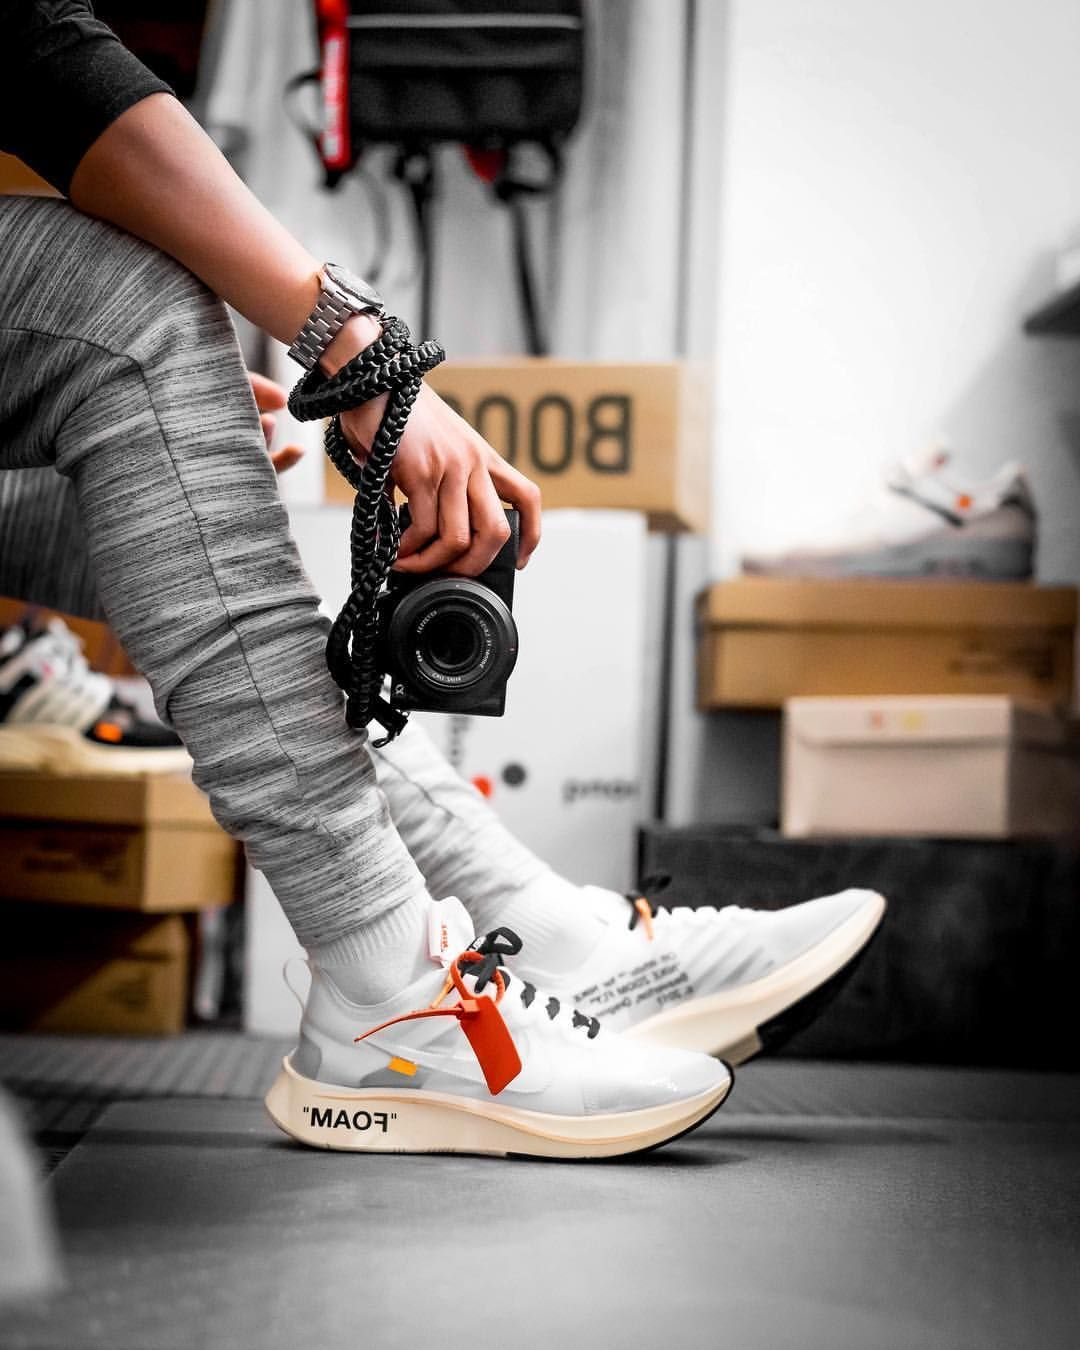 How to get Nike OffWhite Zoom Fly sneakers is part of Sneakers men fashion - How to get Nike OffWhite Zoom Fly sneakers Free shipping worldwide via DHL  100% money back guarantee  You will find the deepest and most versatile selection of kicks here